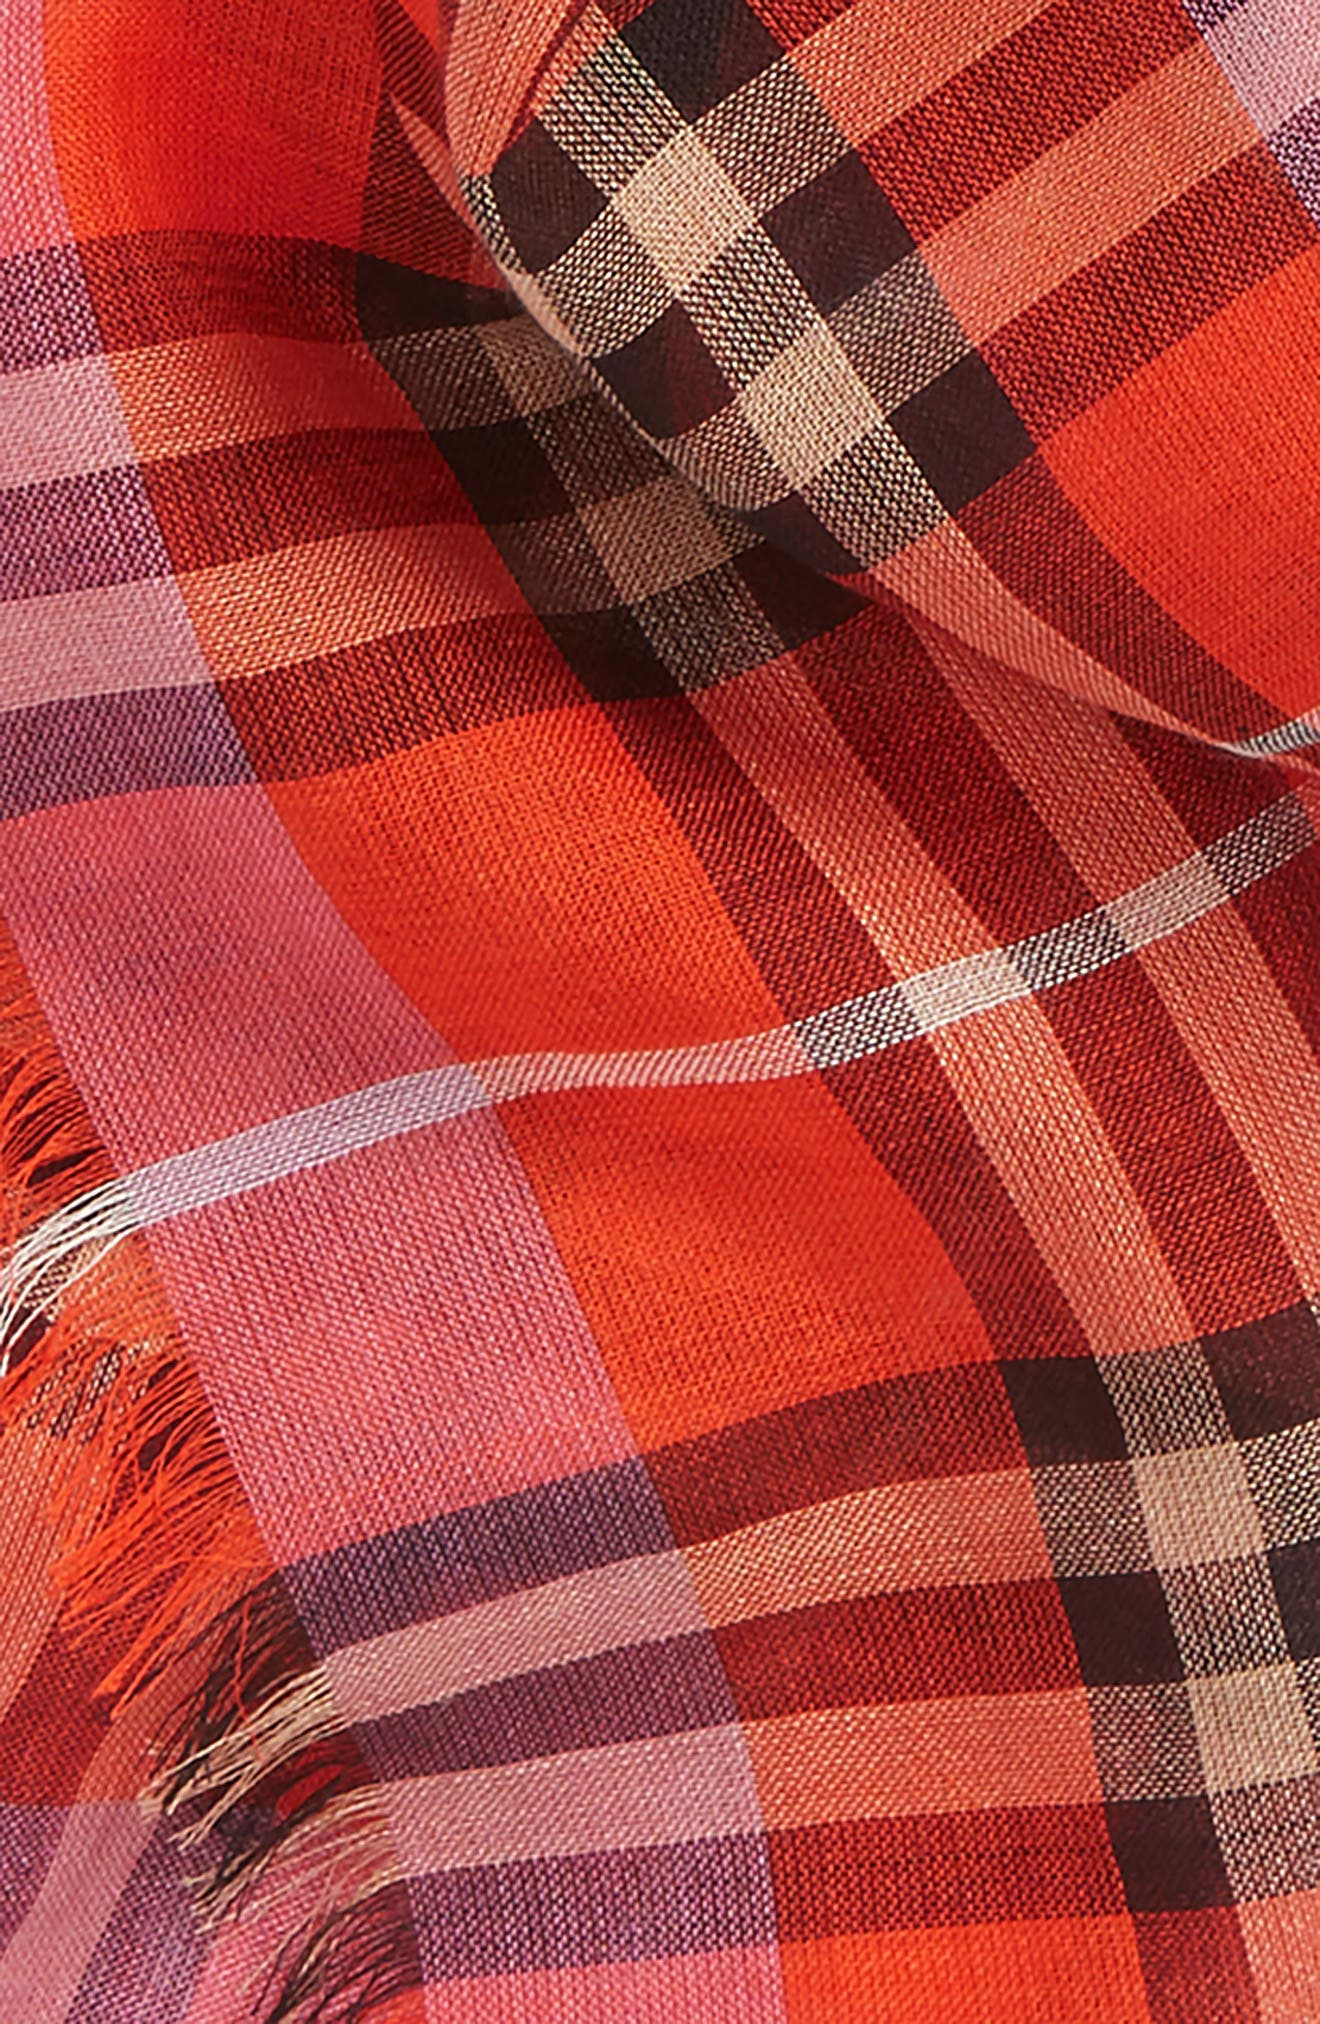 Vintage Check Wool & Silk Blend Scarf,                             Alternate thumbnail 3, color,                             Bright Orange Red